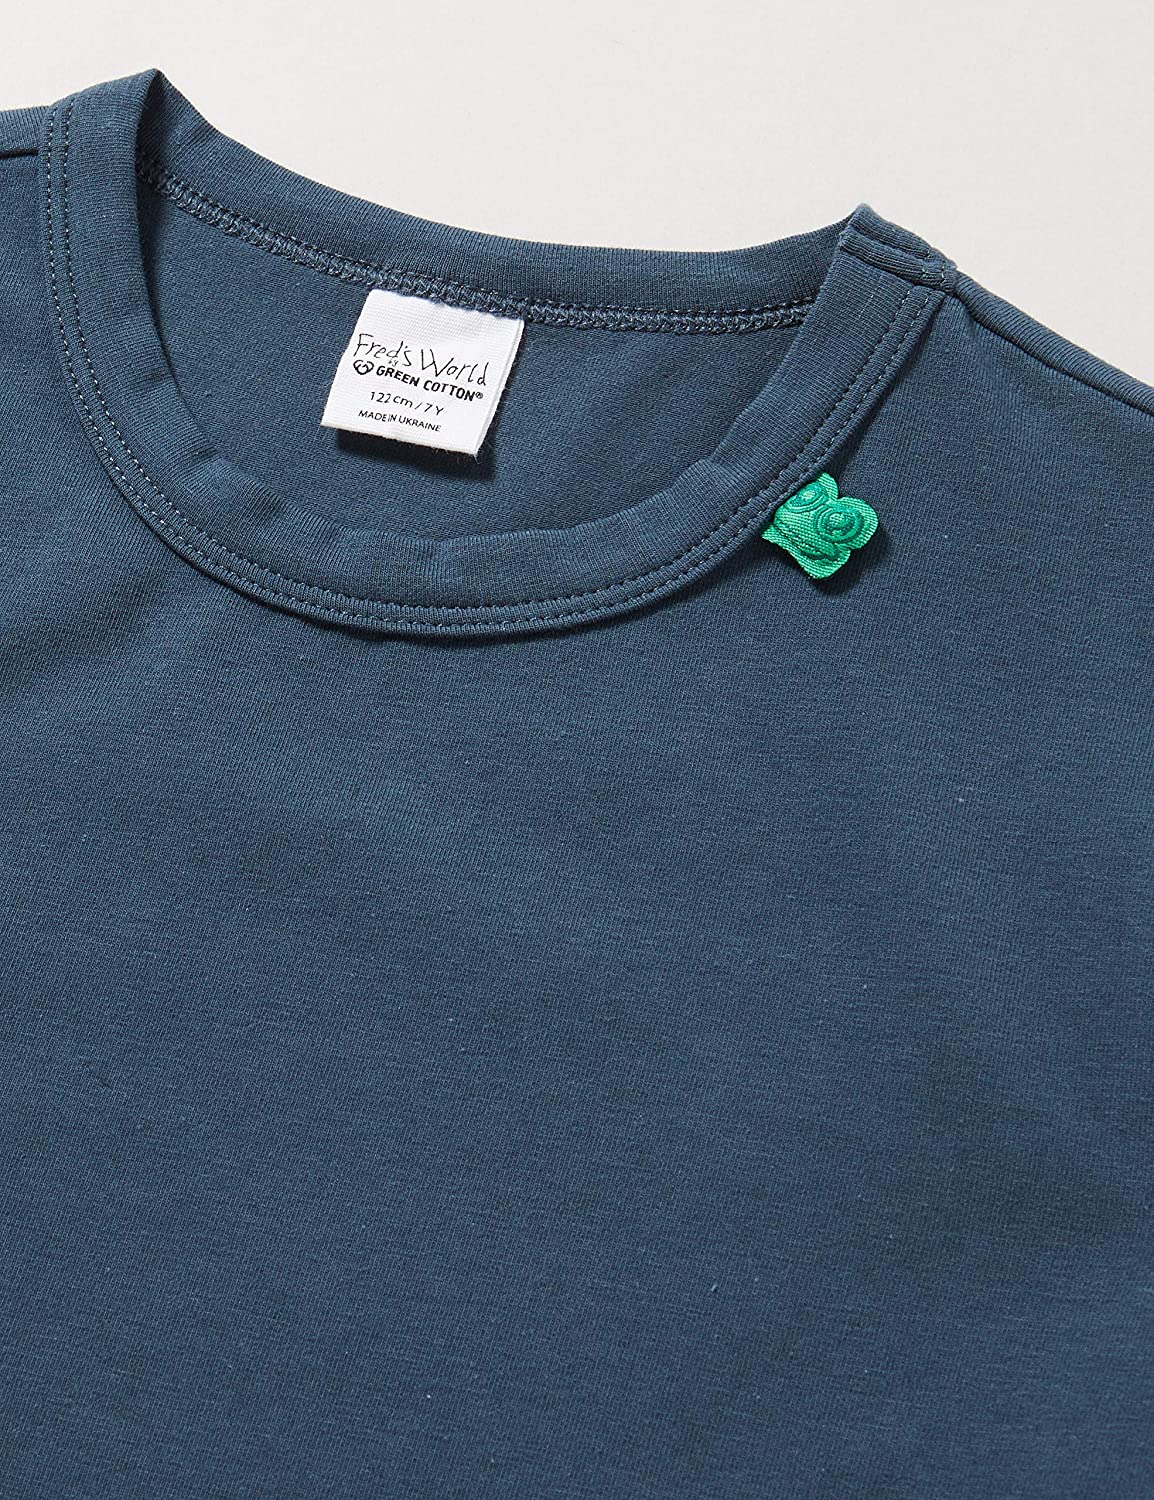 Freds World by Green Cotton Jungen Alfa S//S T T-Shirt